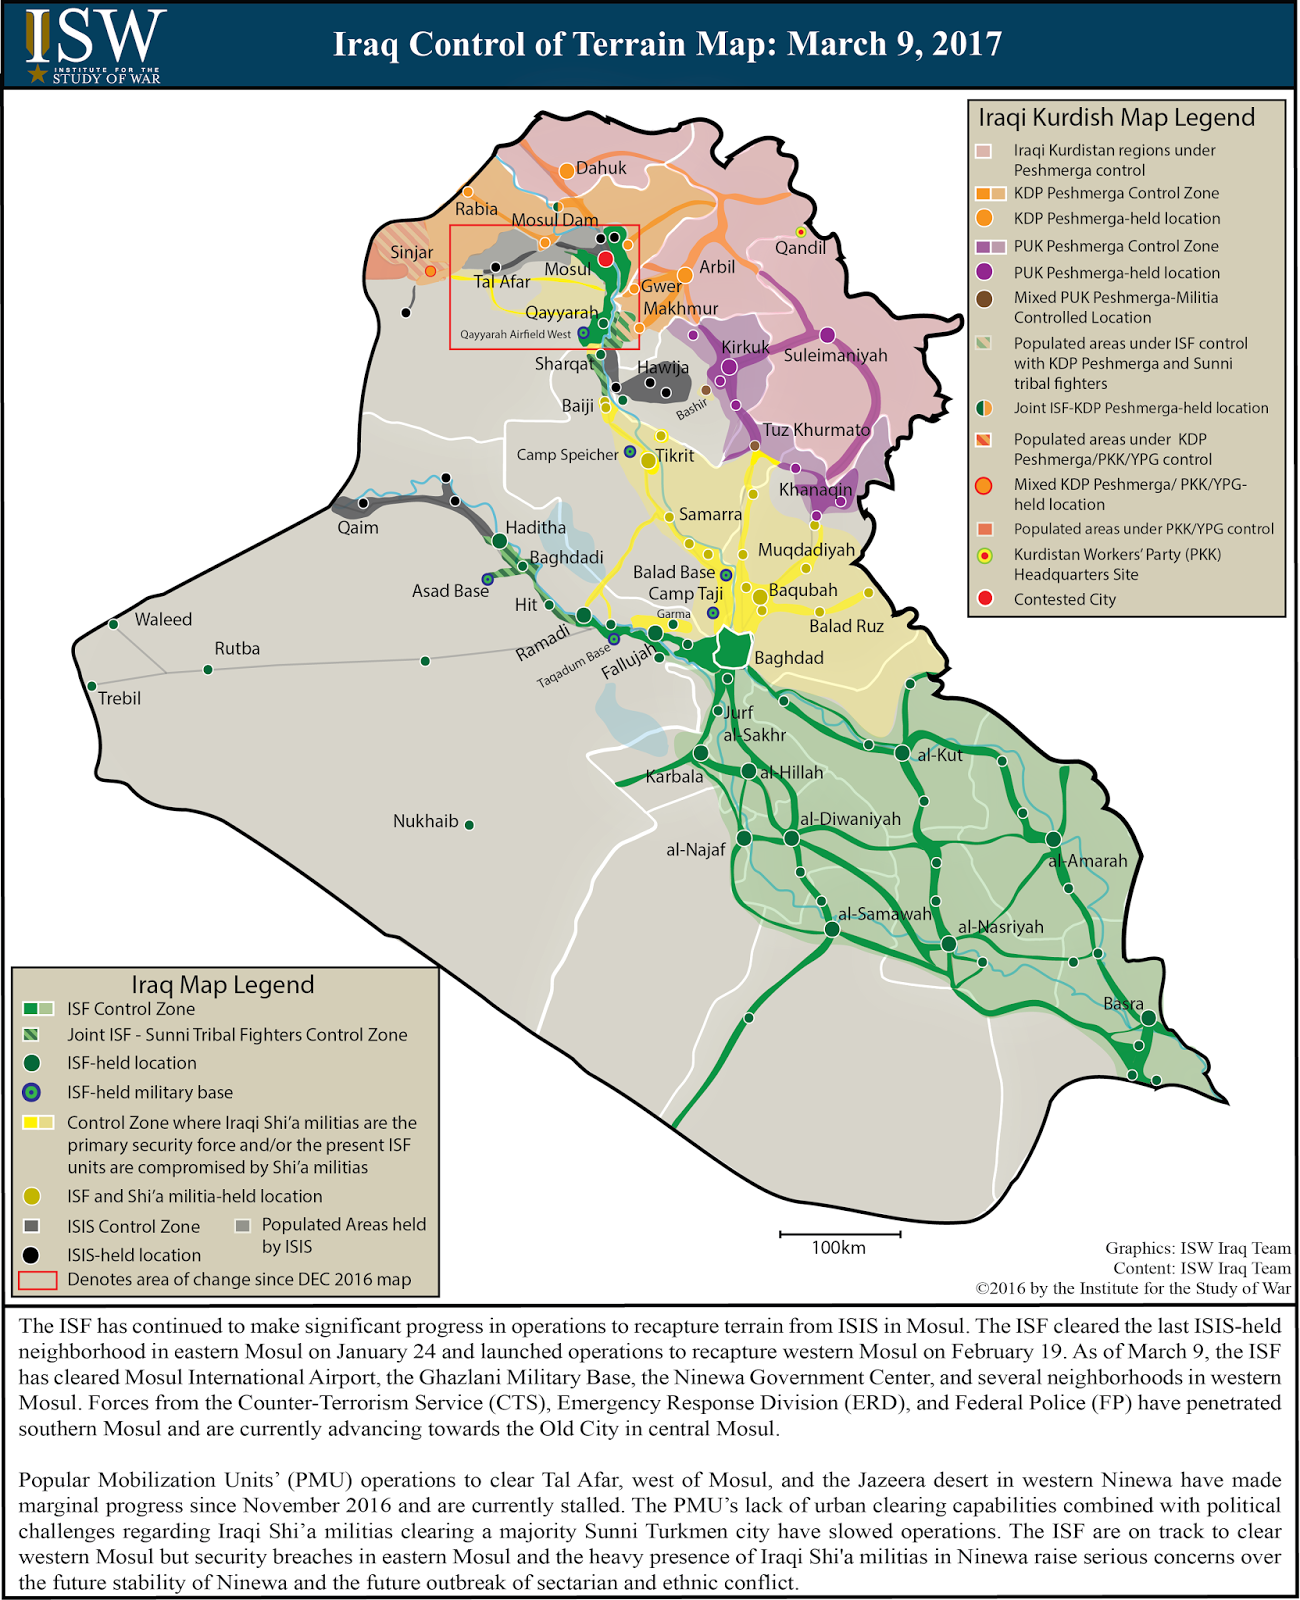 ISW Blog: Iraq Control of Terrain Map: March 9, 2017